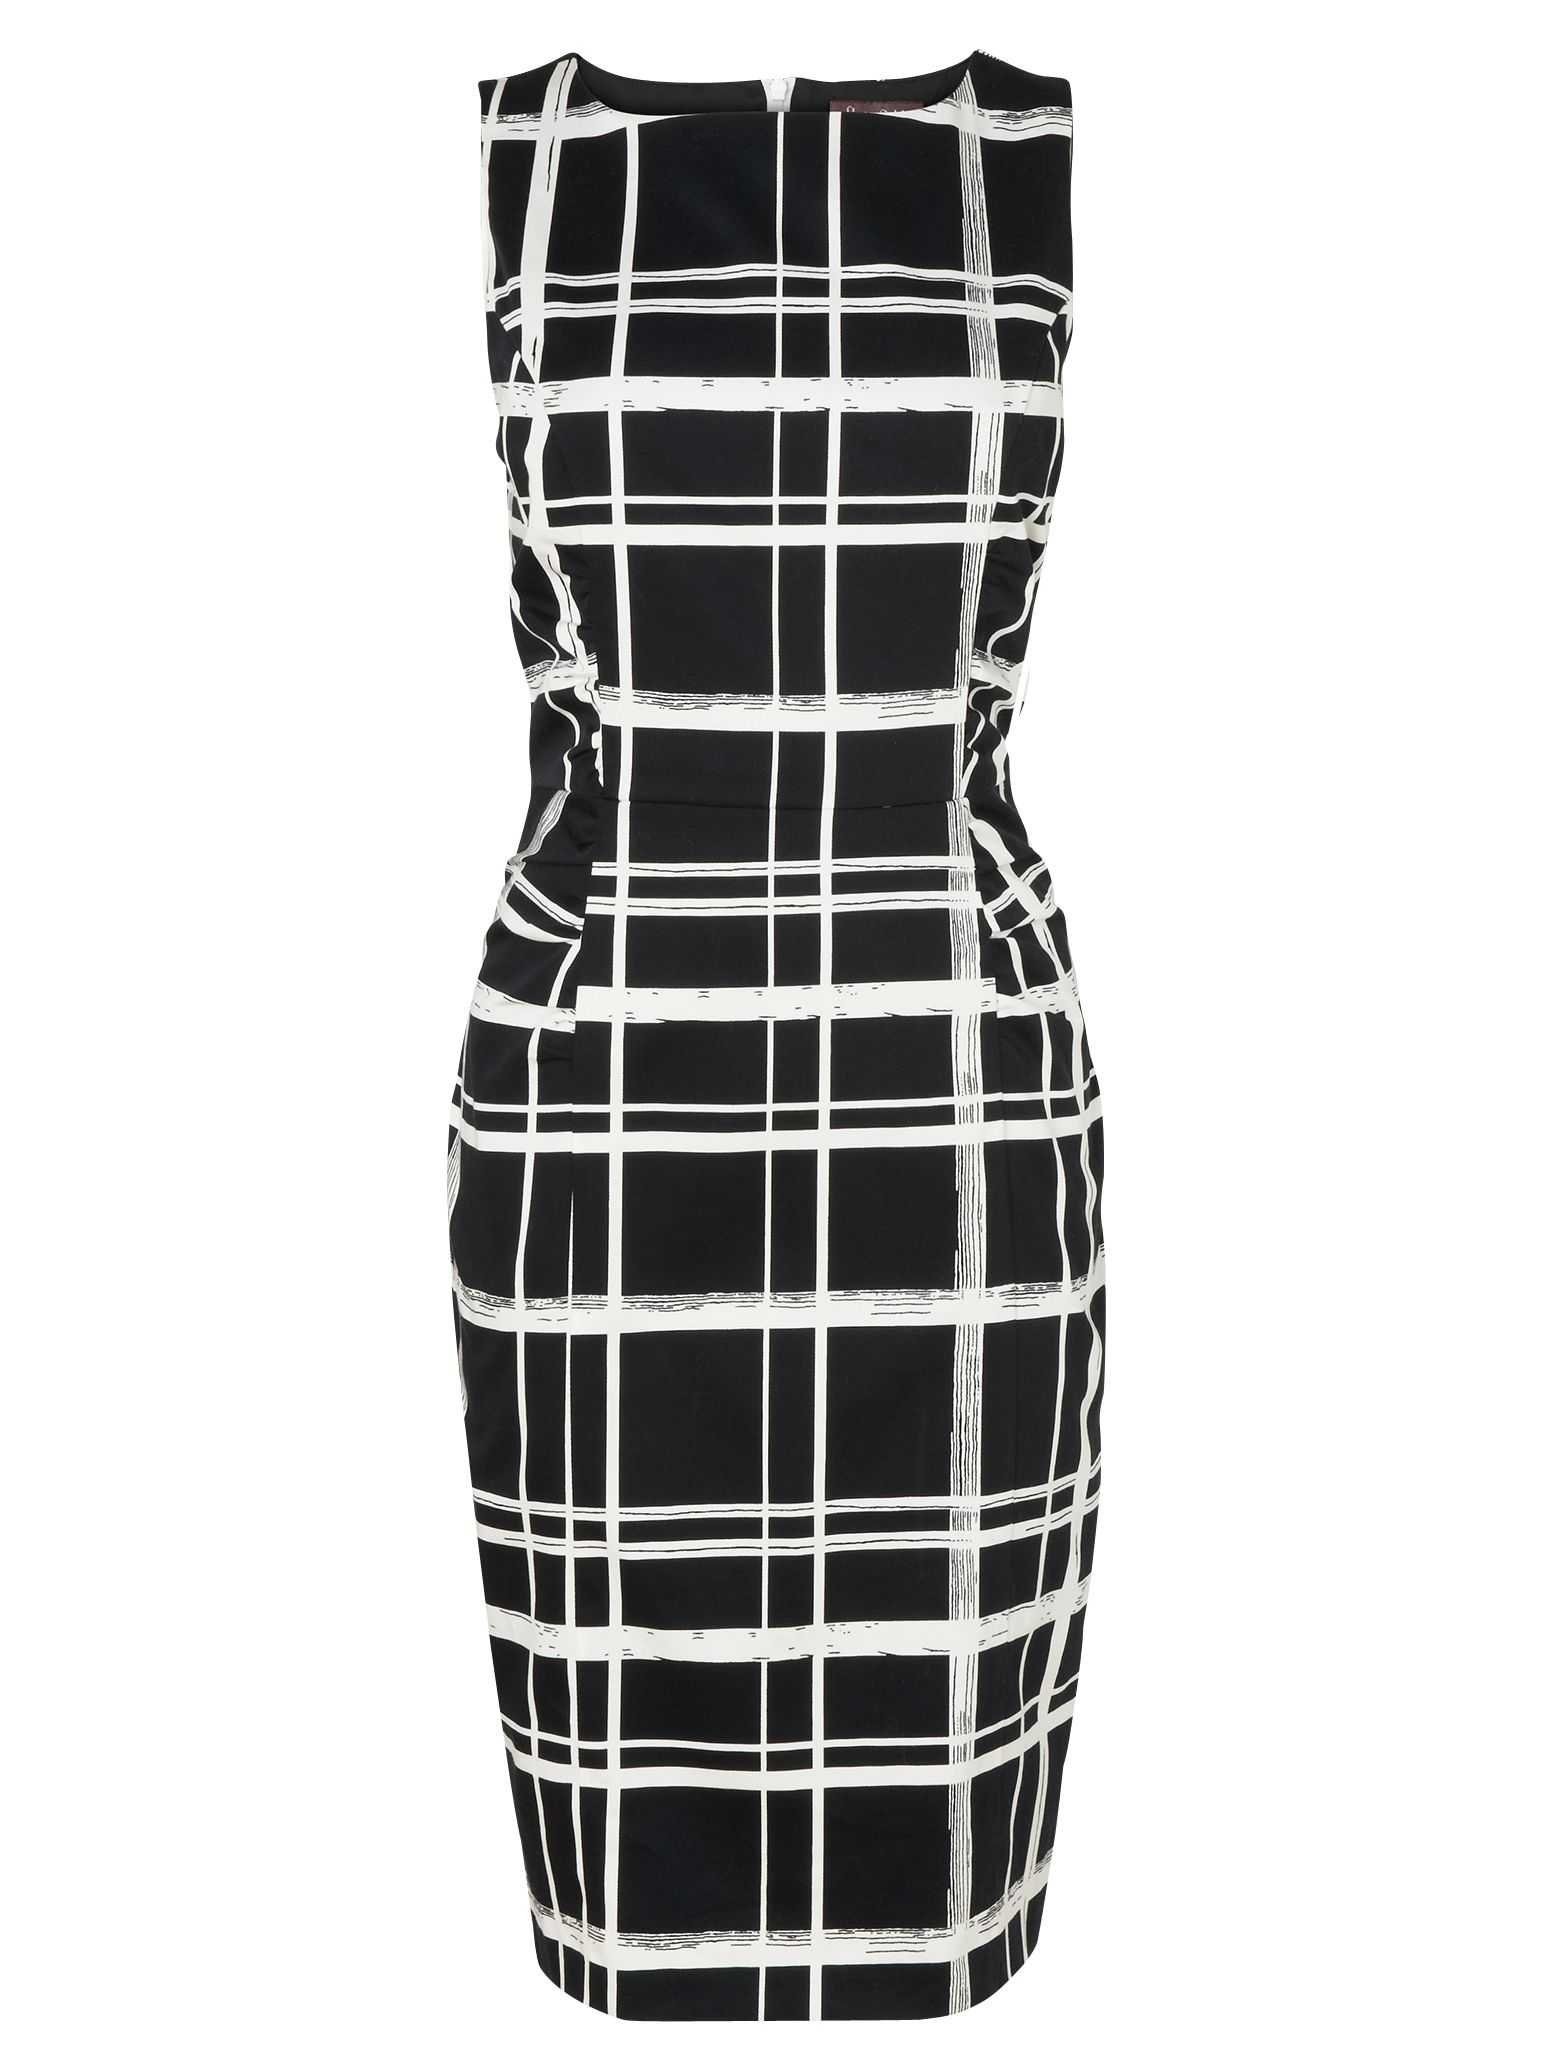 phase eight greta checked dress black/ivory, phase, eight, greta, checked, dress, black/ivory, phase eight, 14|18|16|12|8, women, womens dresses, special offers, womenswear offers, 20% off full price phase eight, womens dresses offers, latest reductions, fashion magazine, brands l-z, inactive womenswear, 1867418